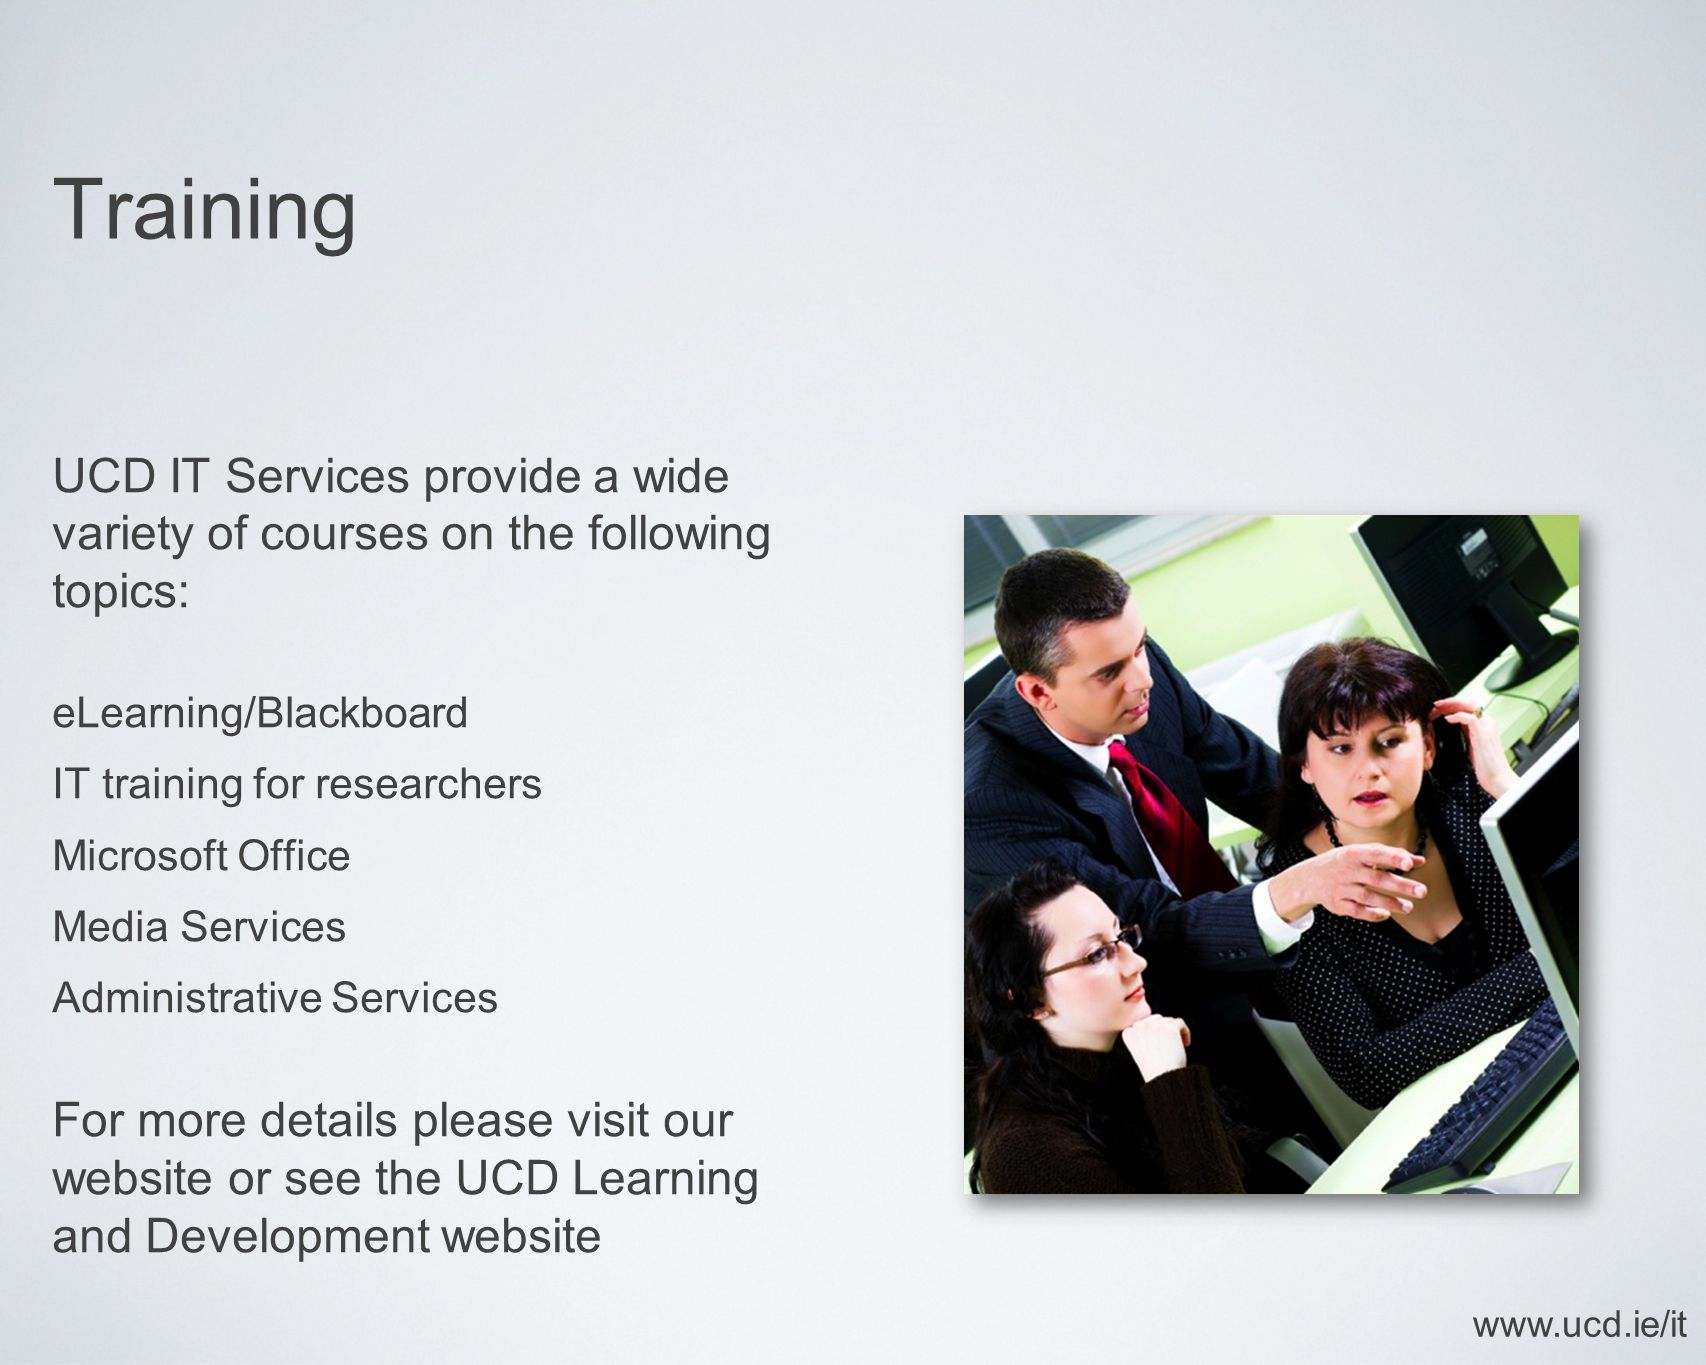 Training UCD IT Services provide a wide variety of courses on the following topics: eLearning/Blackboard IT training for researchers Microsoft Office Media Services Administrative Services For more details please visit our website or see the UCD Learning and Development website www.ucd.ie/it